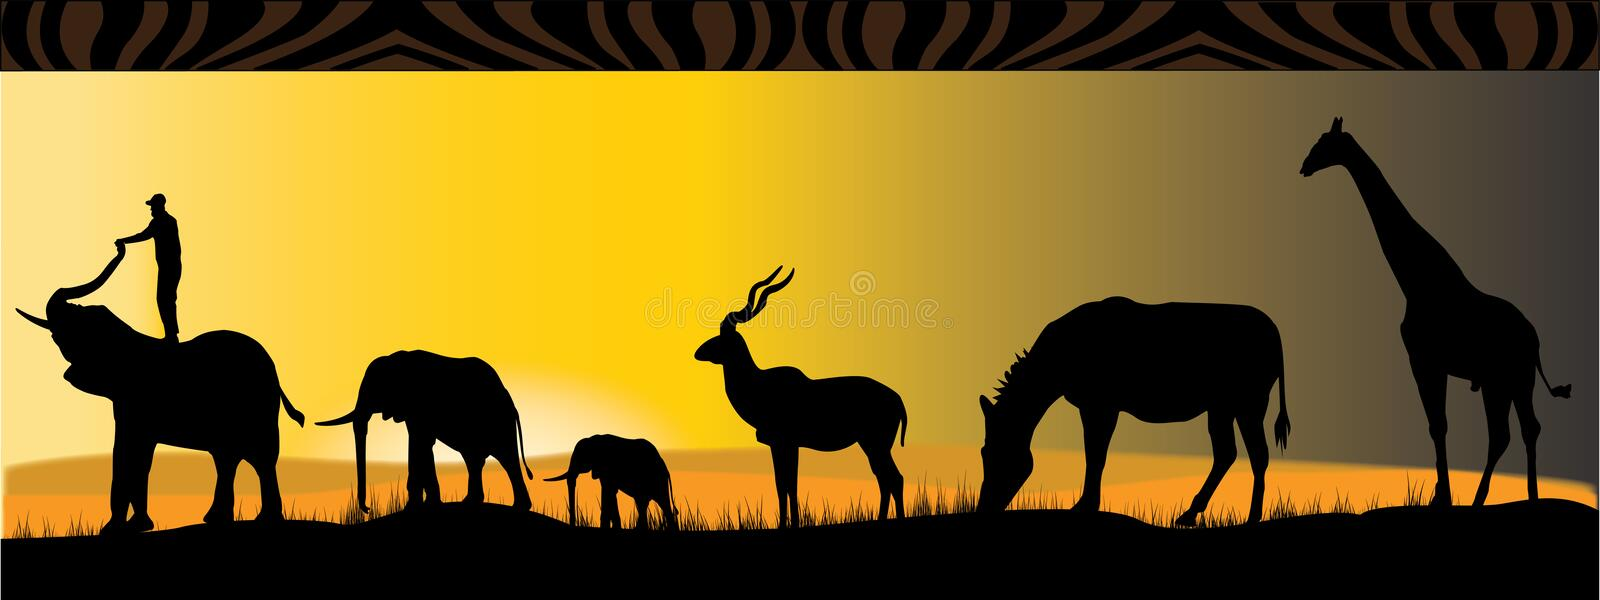 African animals stock images